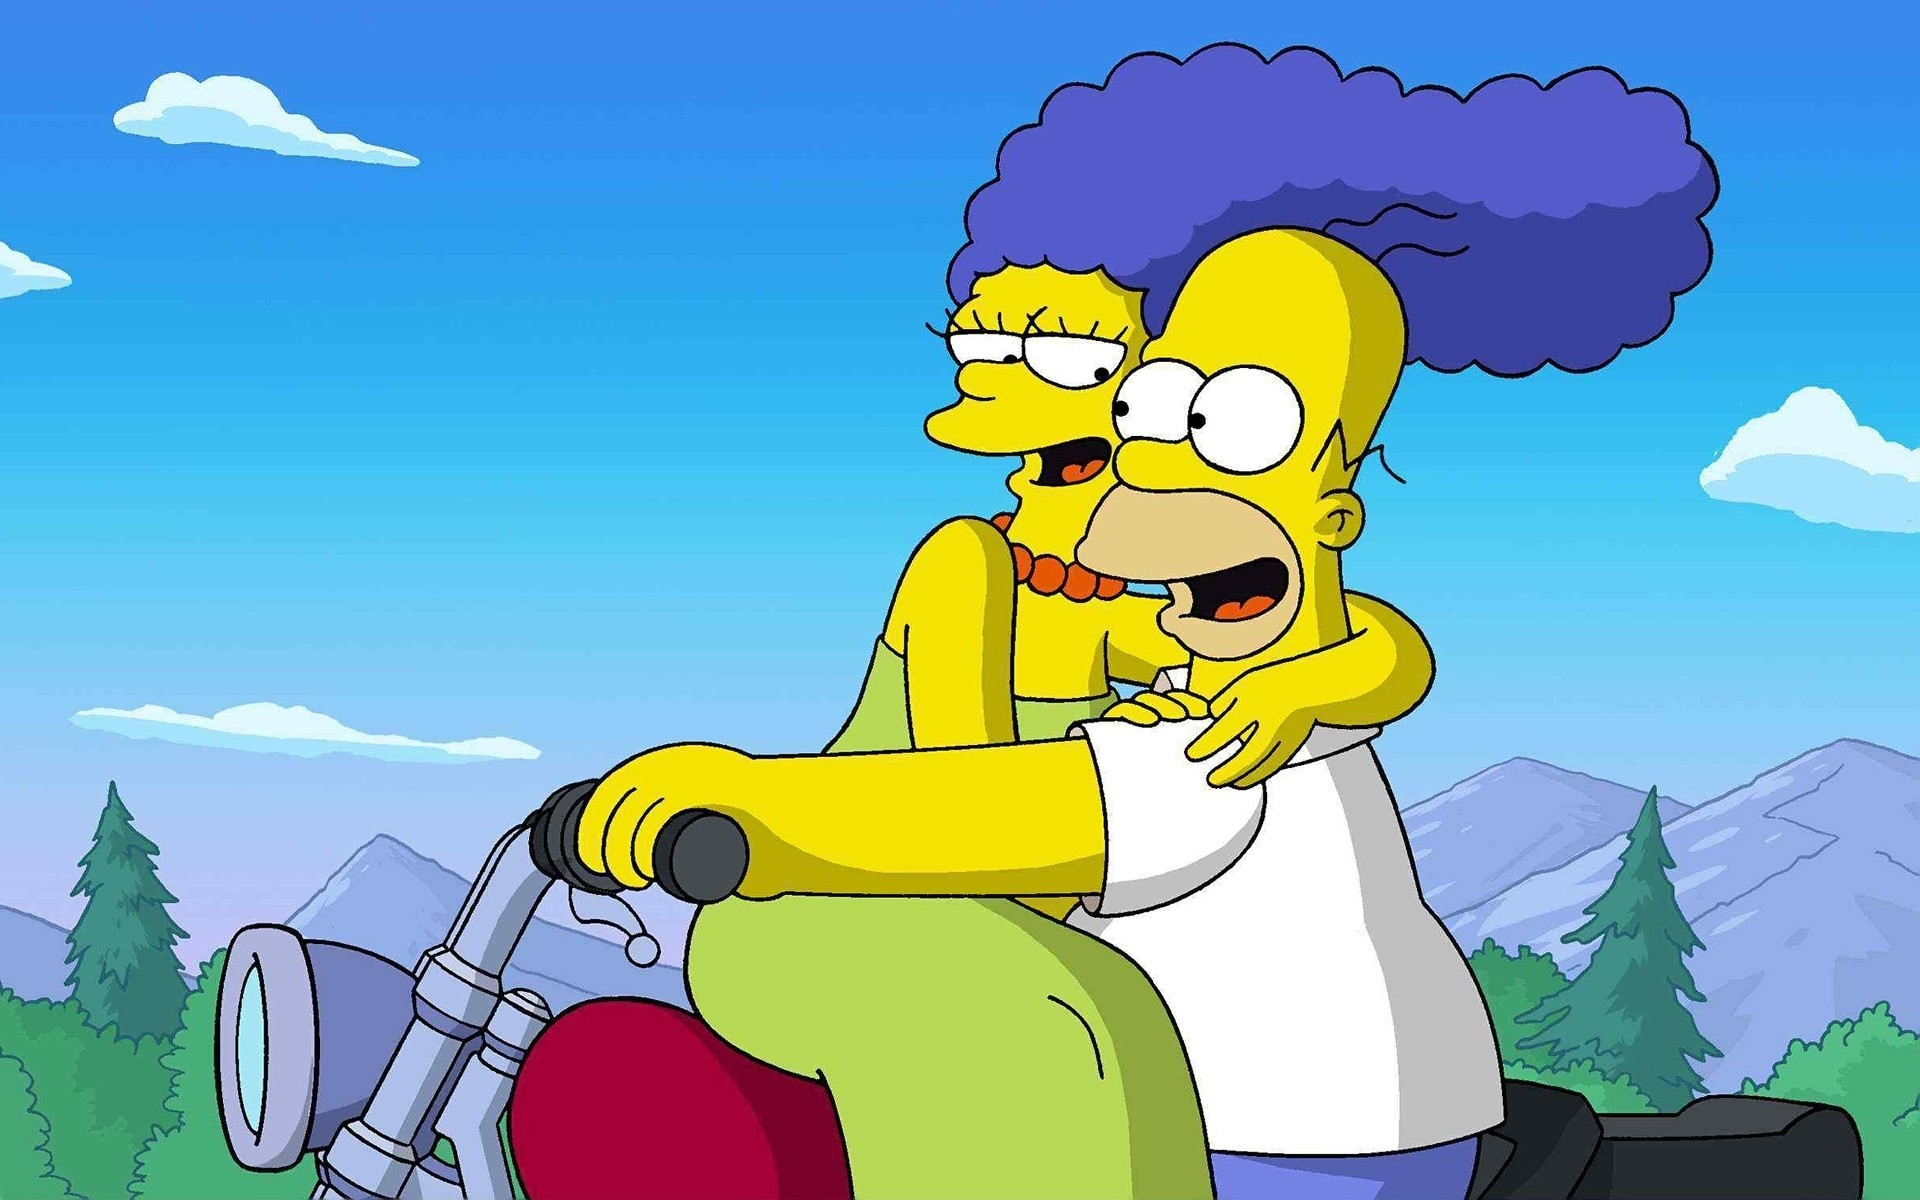 1920x1200 ... Next: The Simpsons. Category: Female celebrities wallpapers